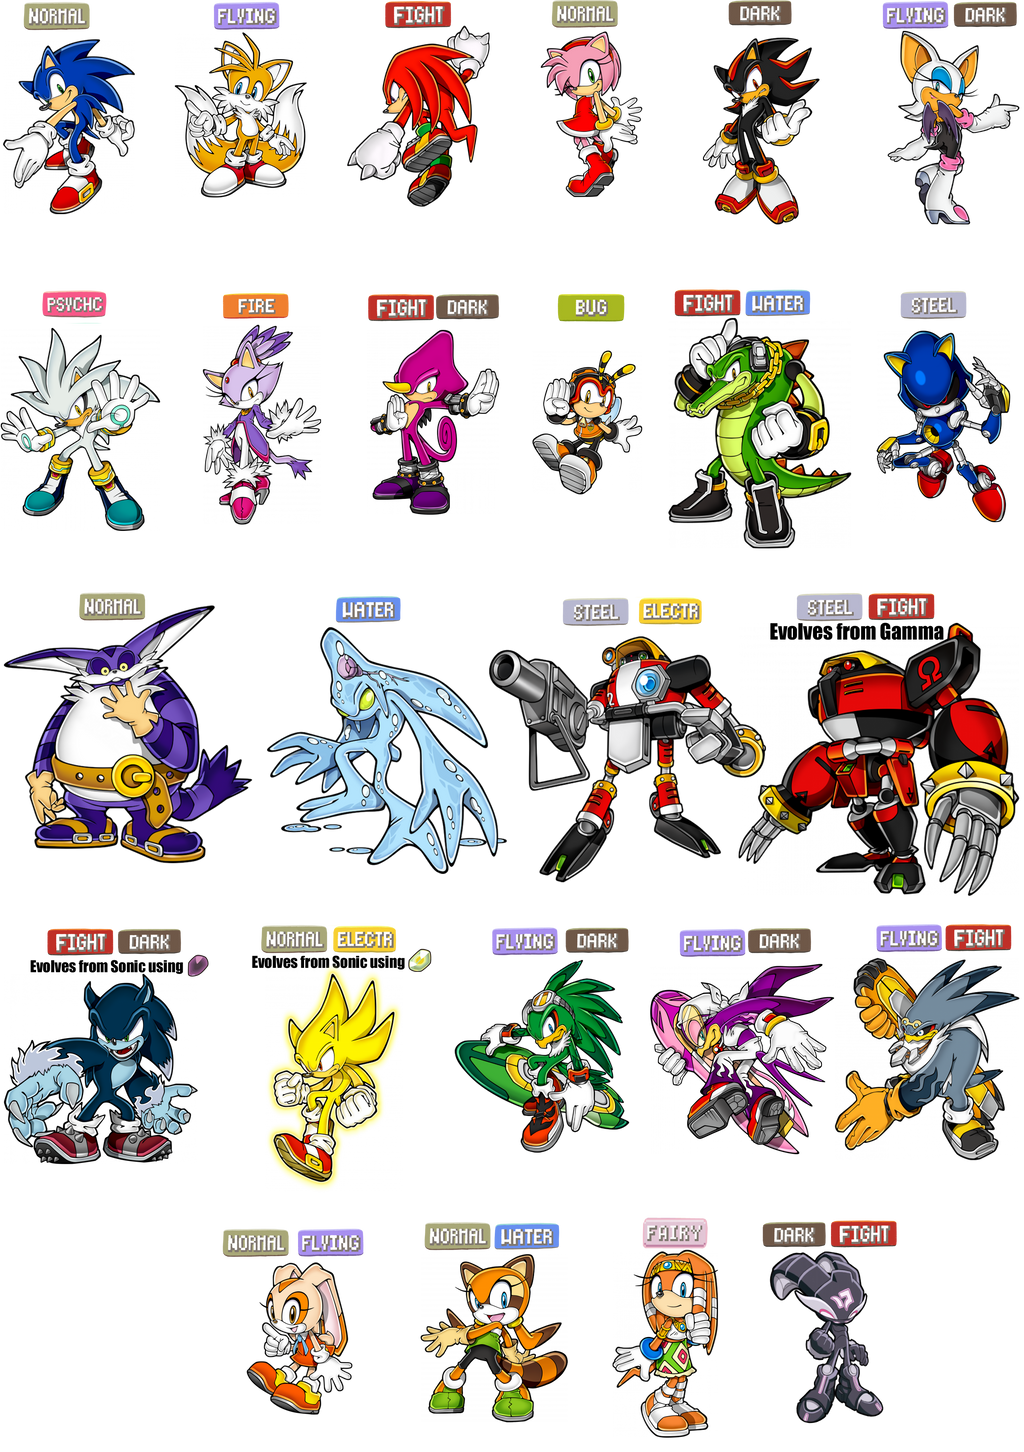 Pokemon Characters And Their Names Images | Pokemon Images